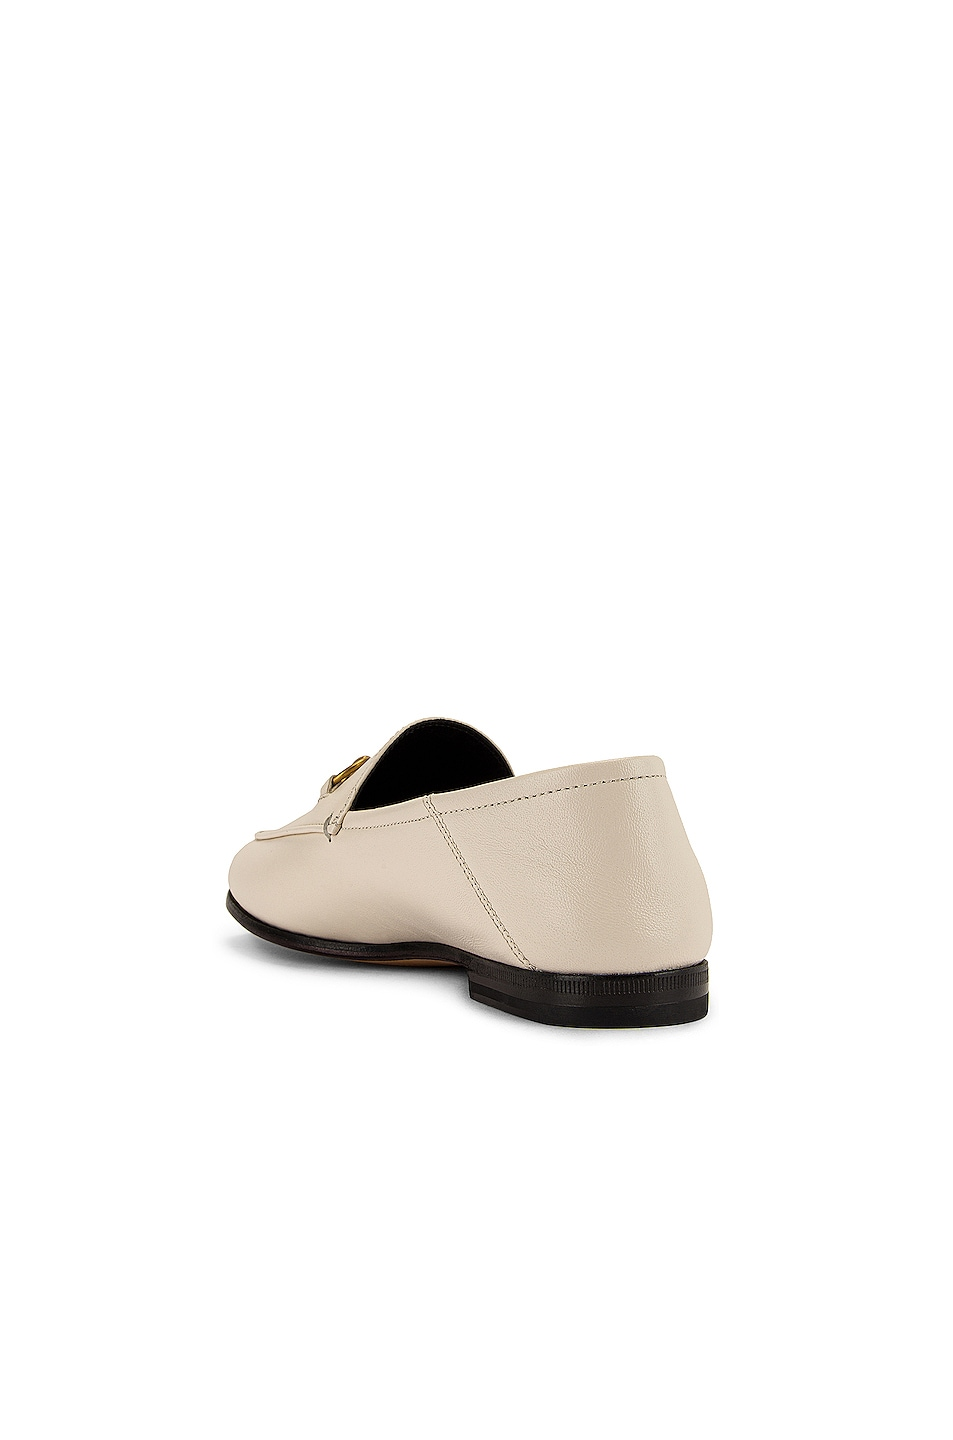 Image 4 of Gucci Leather Horsebit Loafers in Mystic White